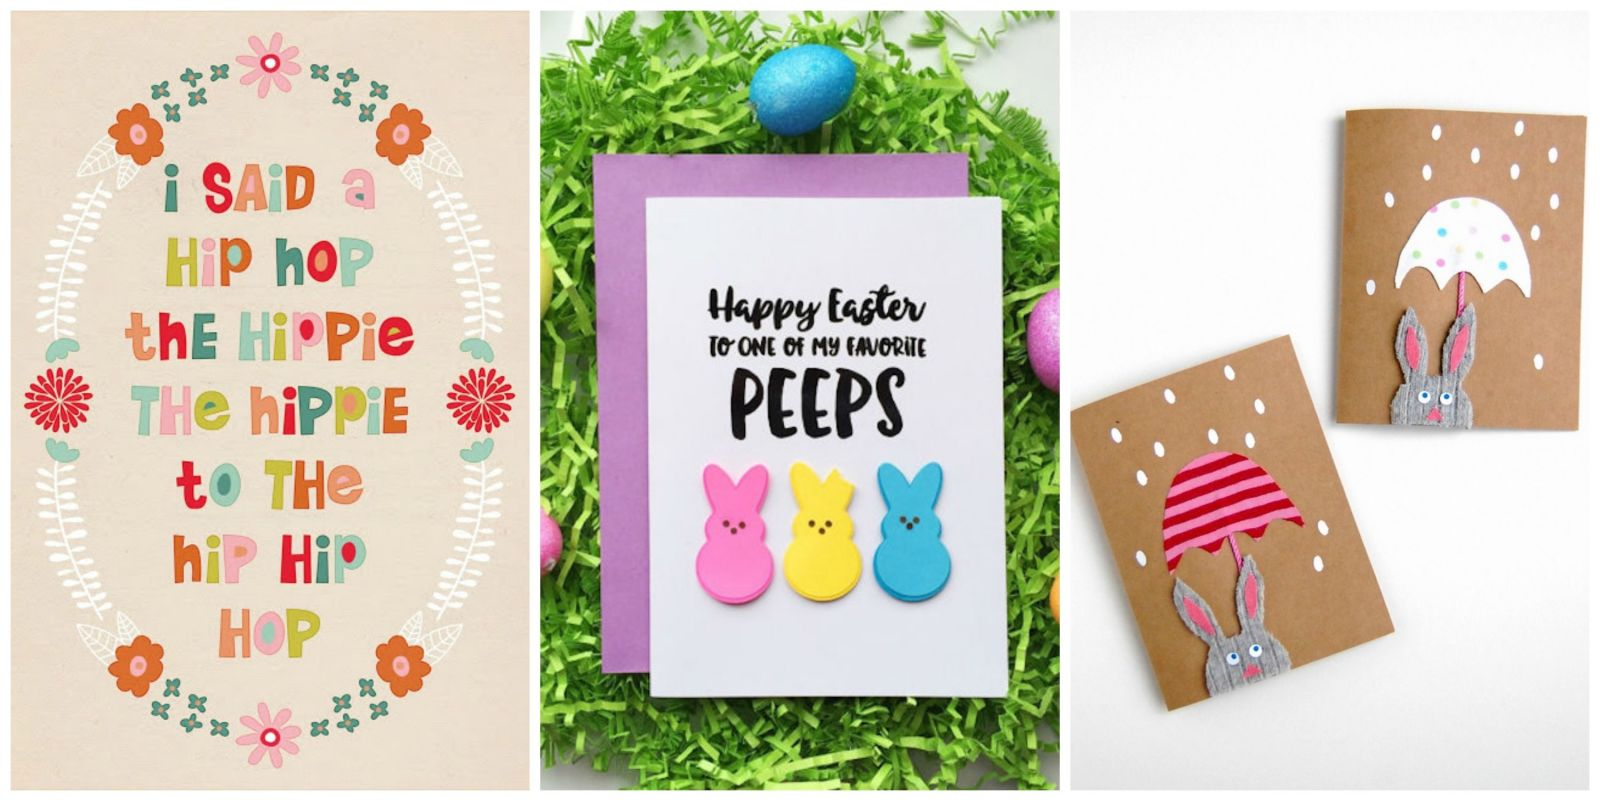 10 Cute Easter Greeting Cards Ideas for Happy Easter Cards – Easter Cards